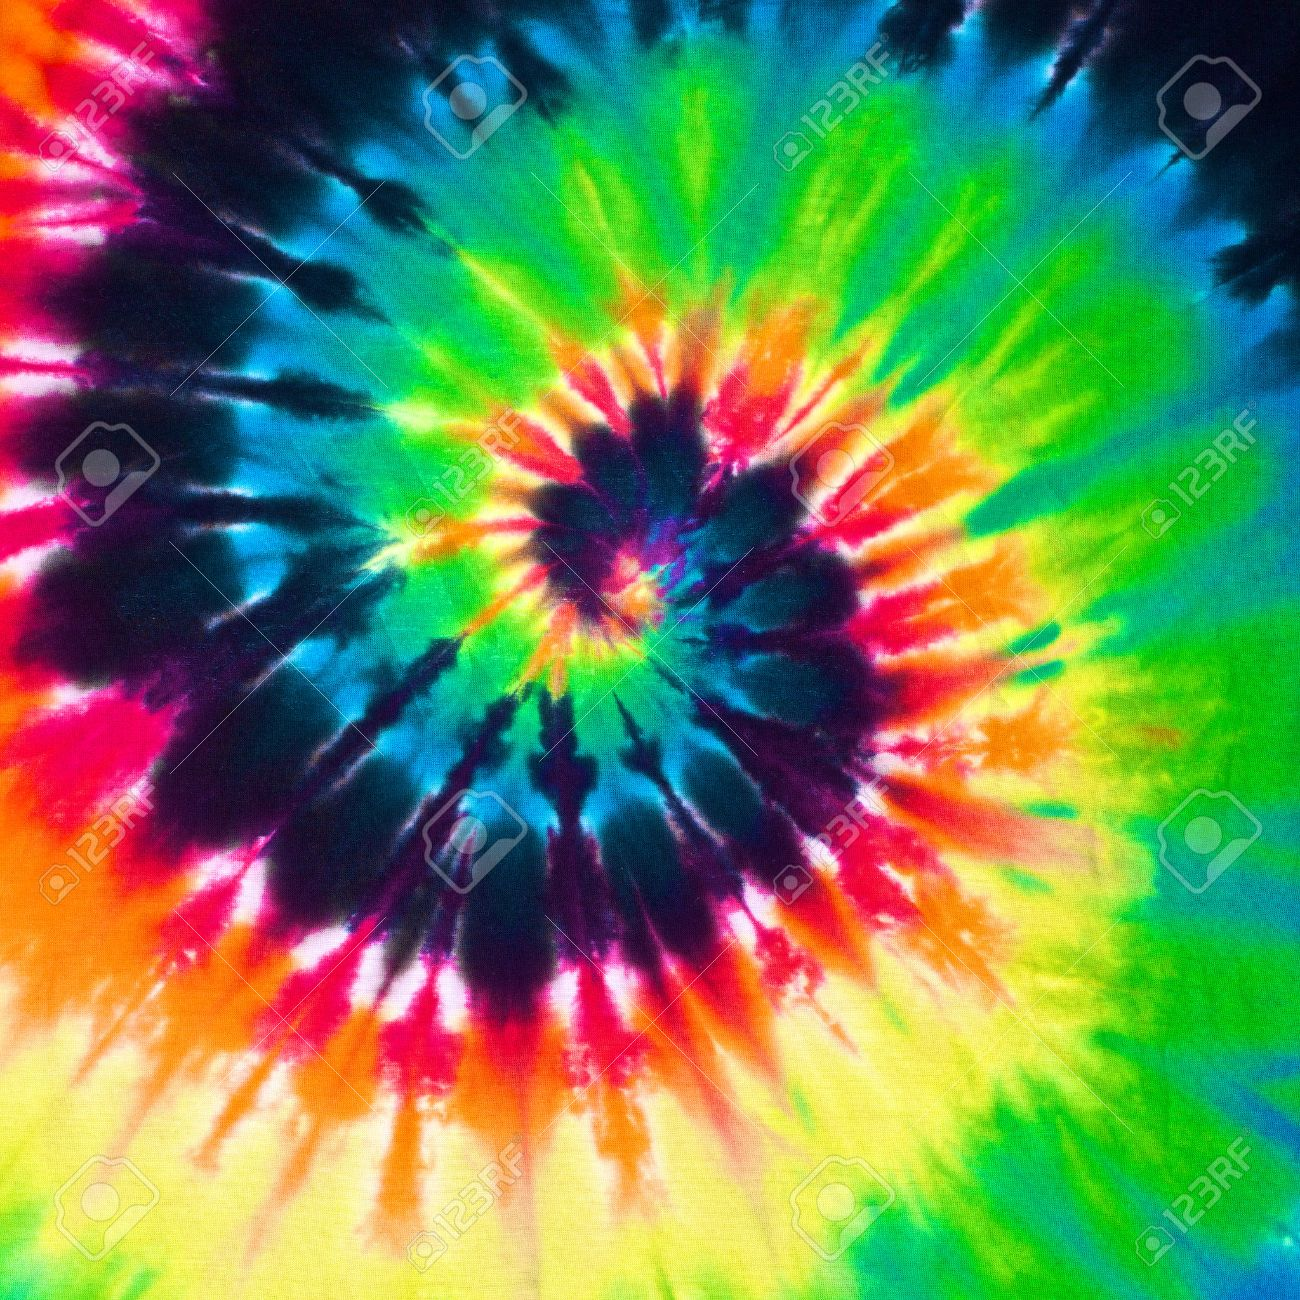 742e643eba41 close up shot of colorful tie dye fabric texture background Stock Photo -  30020189